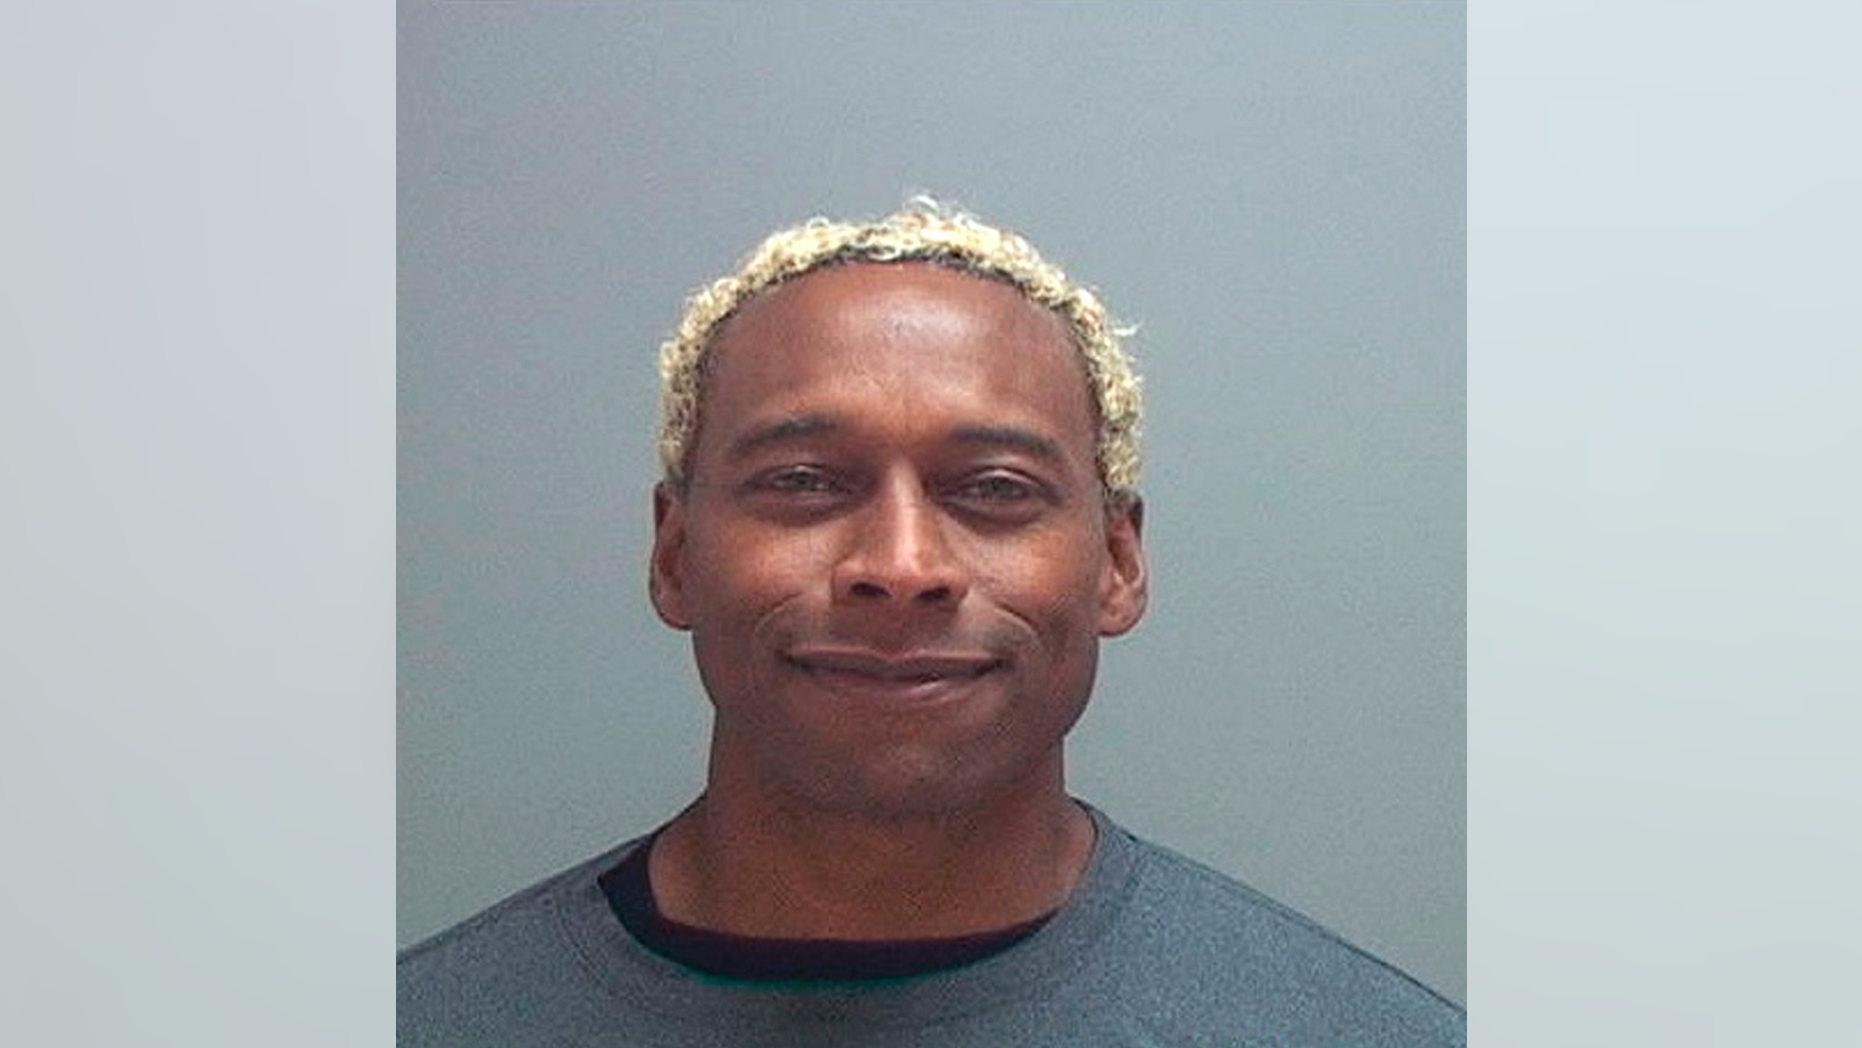 Anthony D. McClanahan, a former Canadian professional football player who trained with the Dallas Cowboys in the 1990s, was charged with killing his wife, prosecutors said on Monday.